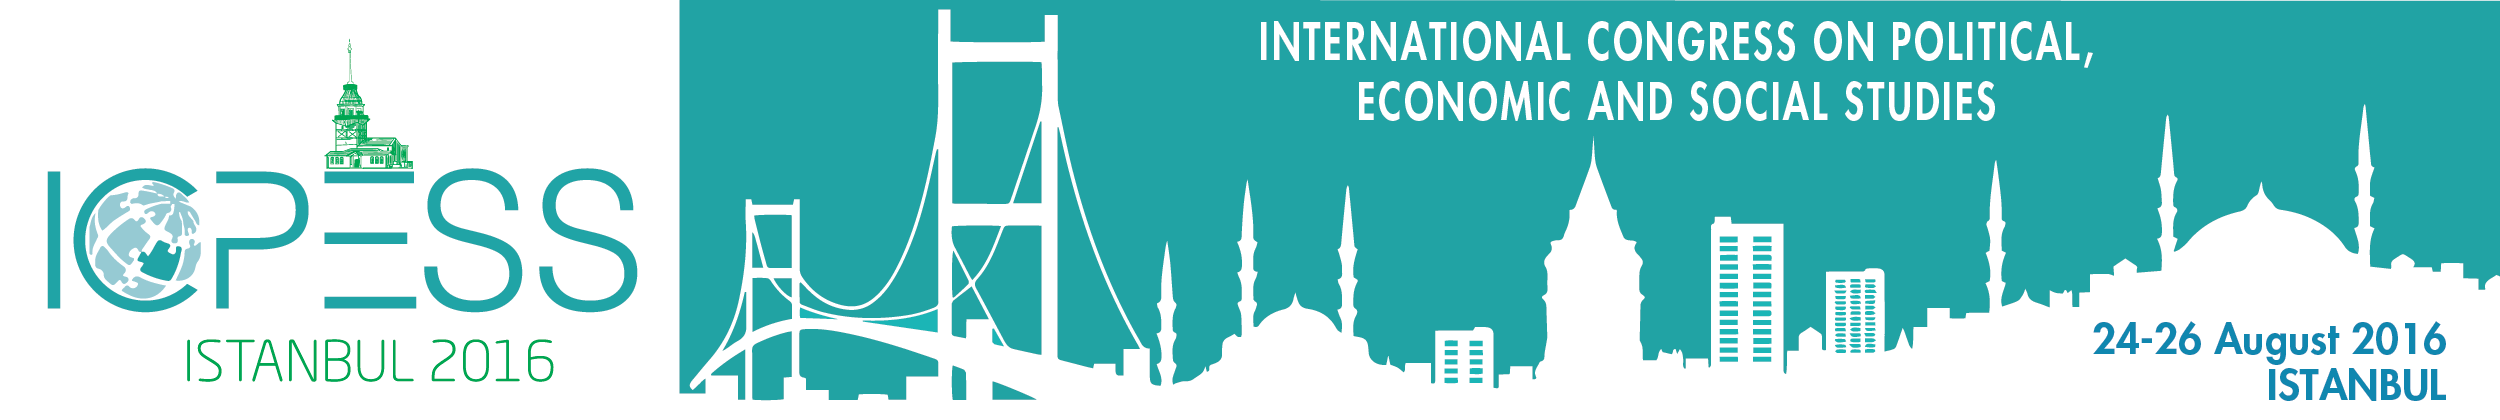 Call for Papers: International Congress on Political, Economic and Social Studies